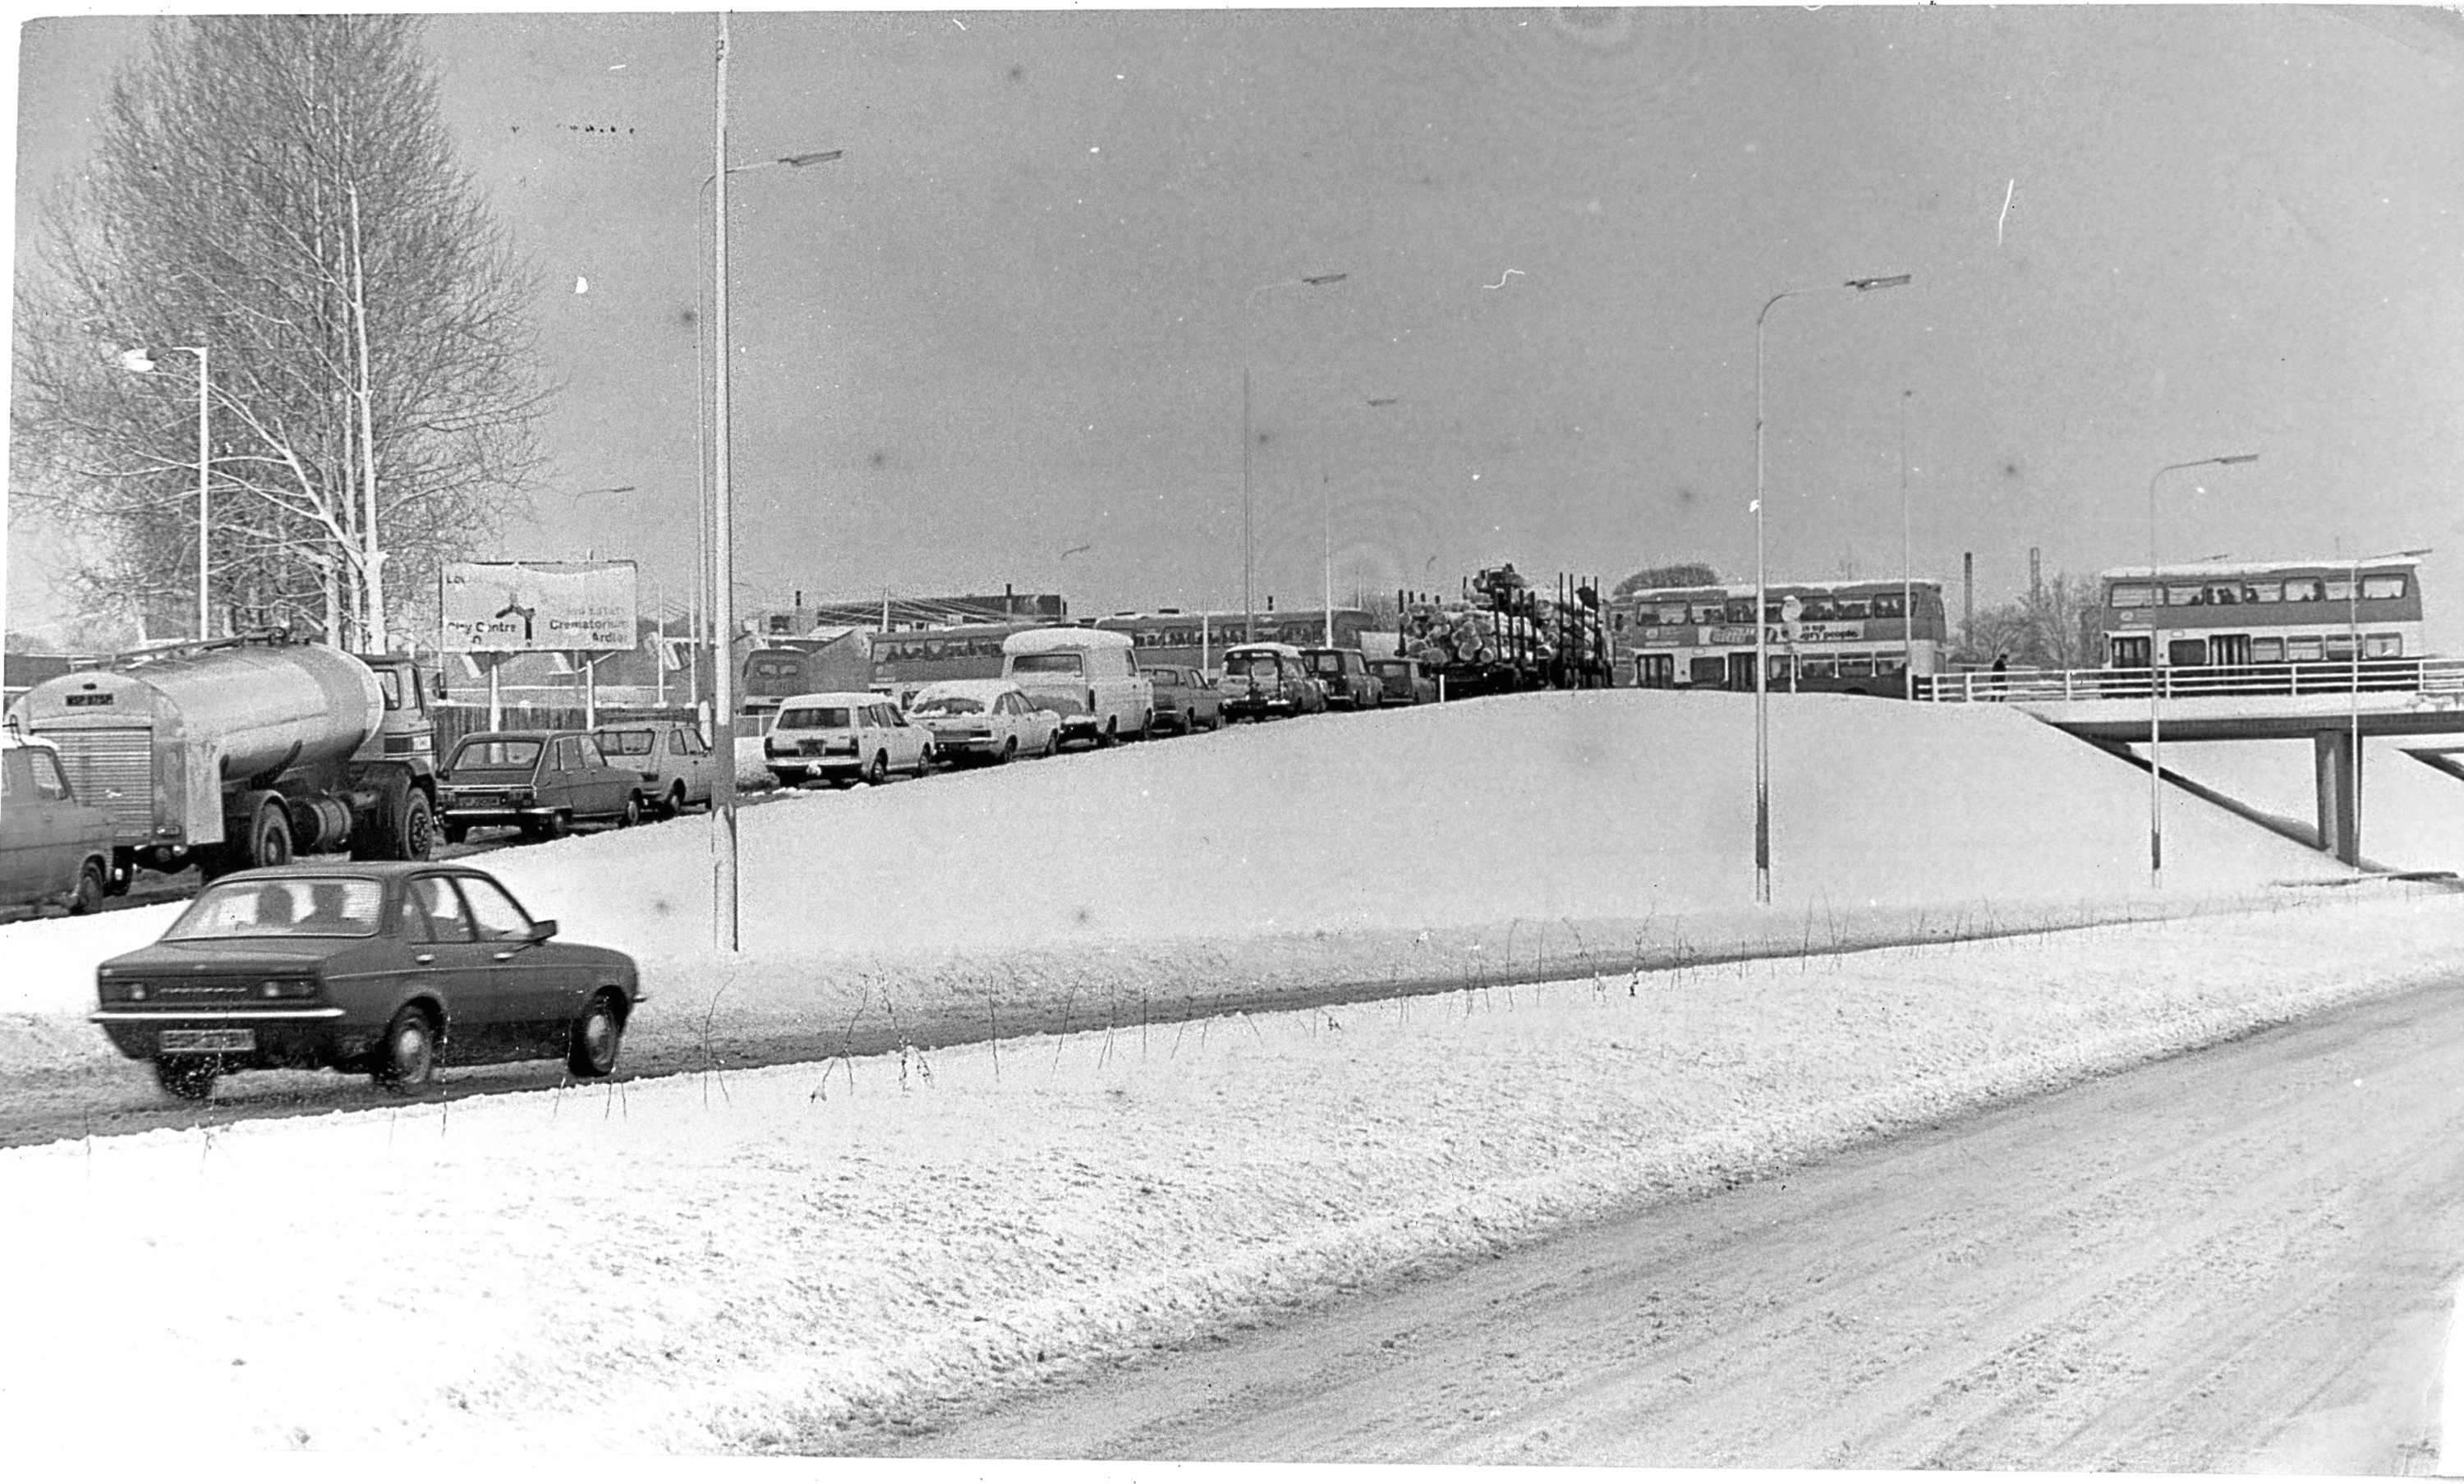 Traffic jams on Kingsway following overnight snow in 1980